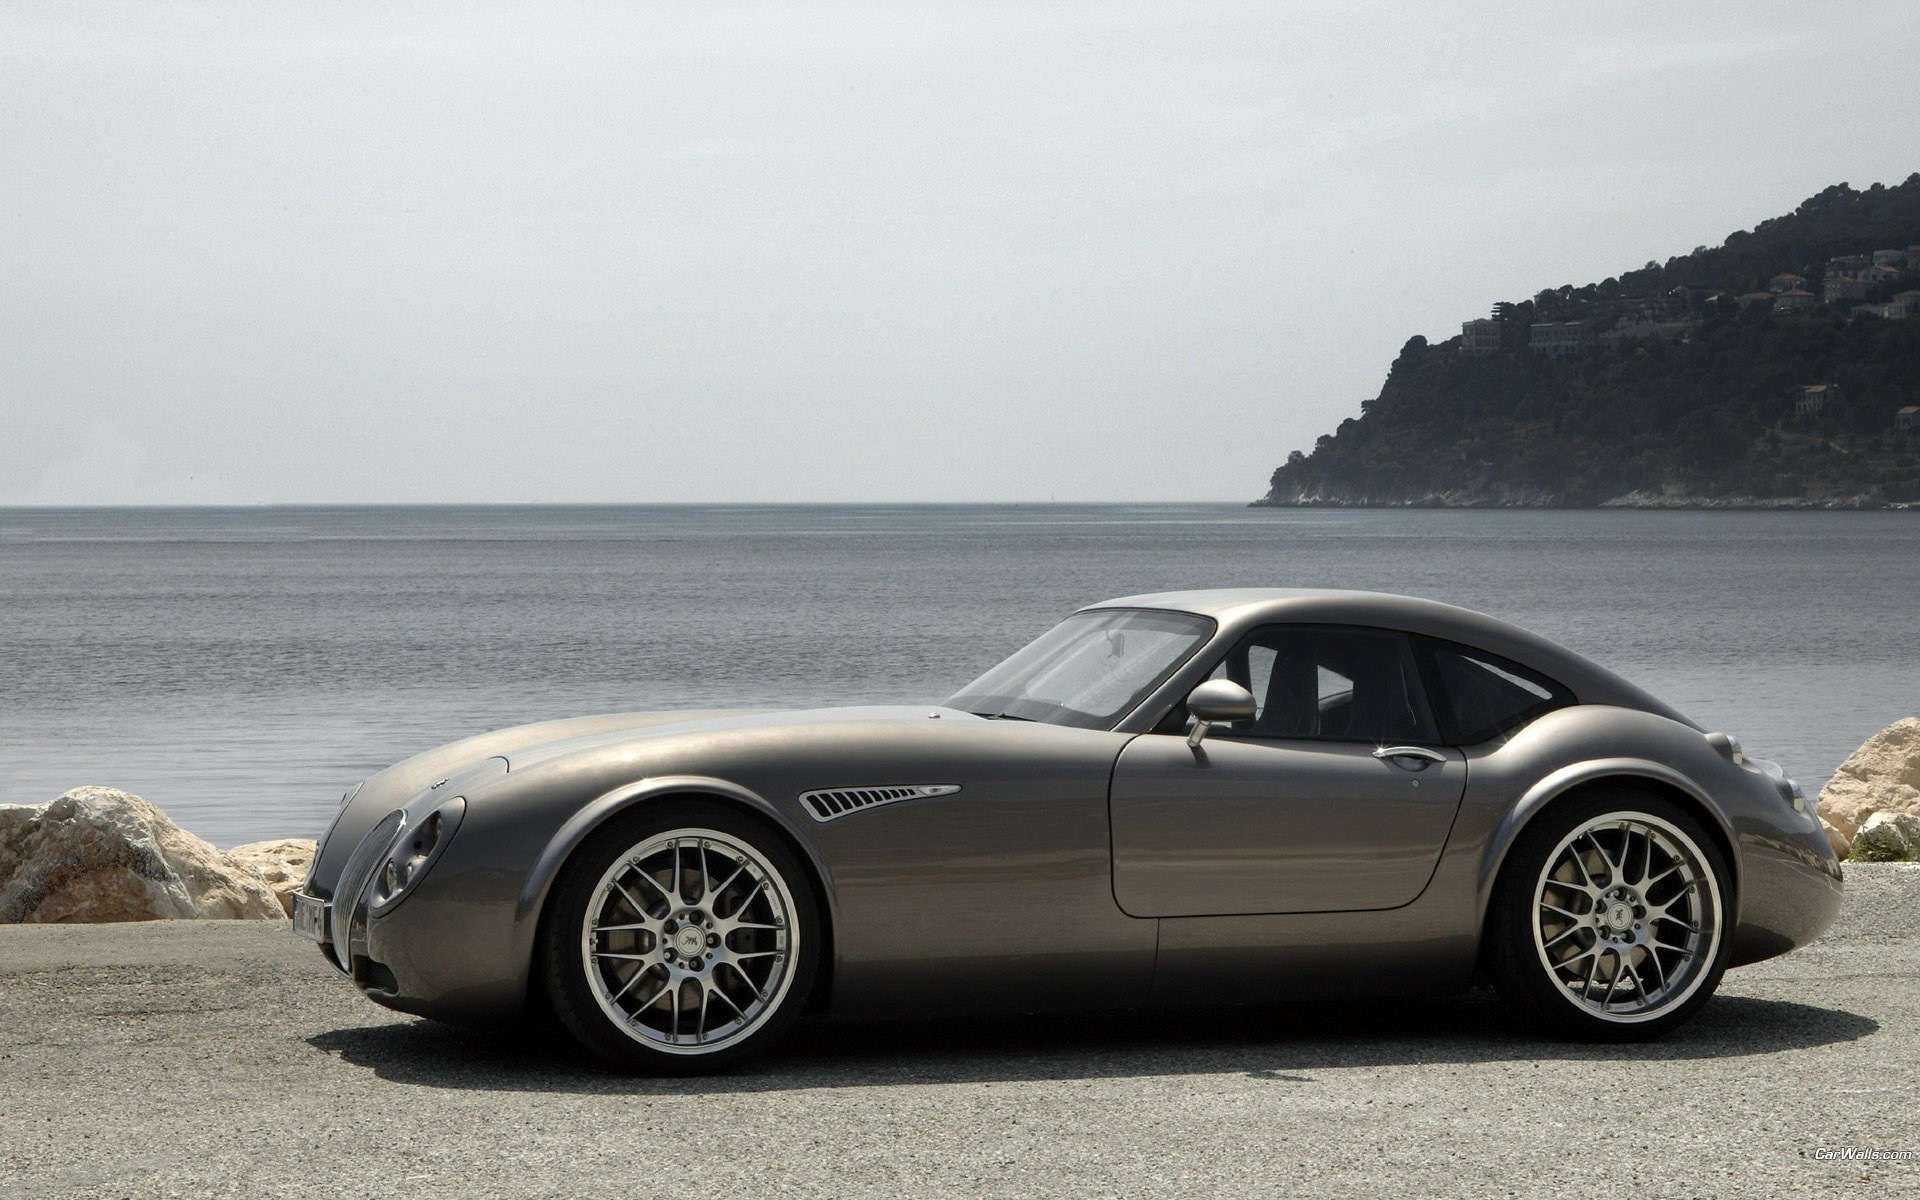 1920x1200 - Wiesmann GT MF4 Wallpapers 10